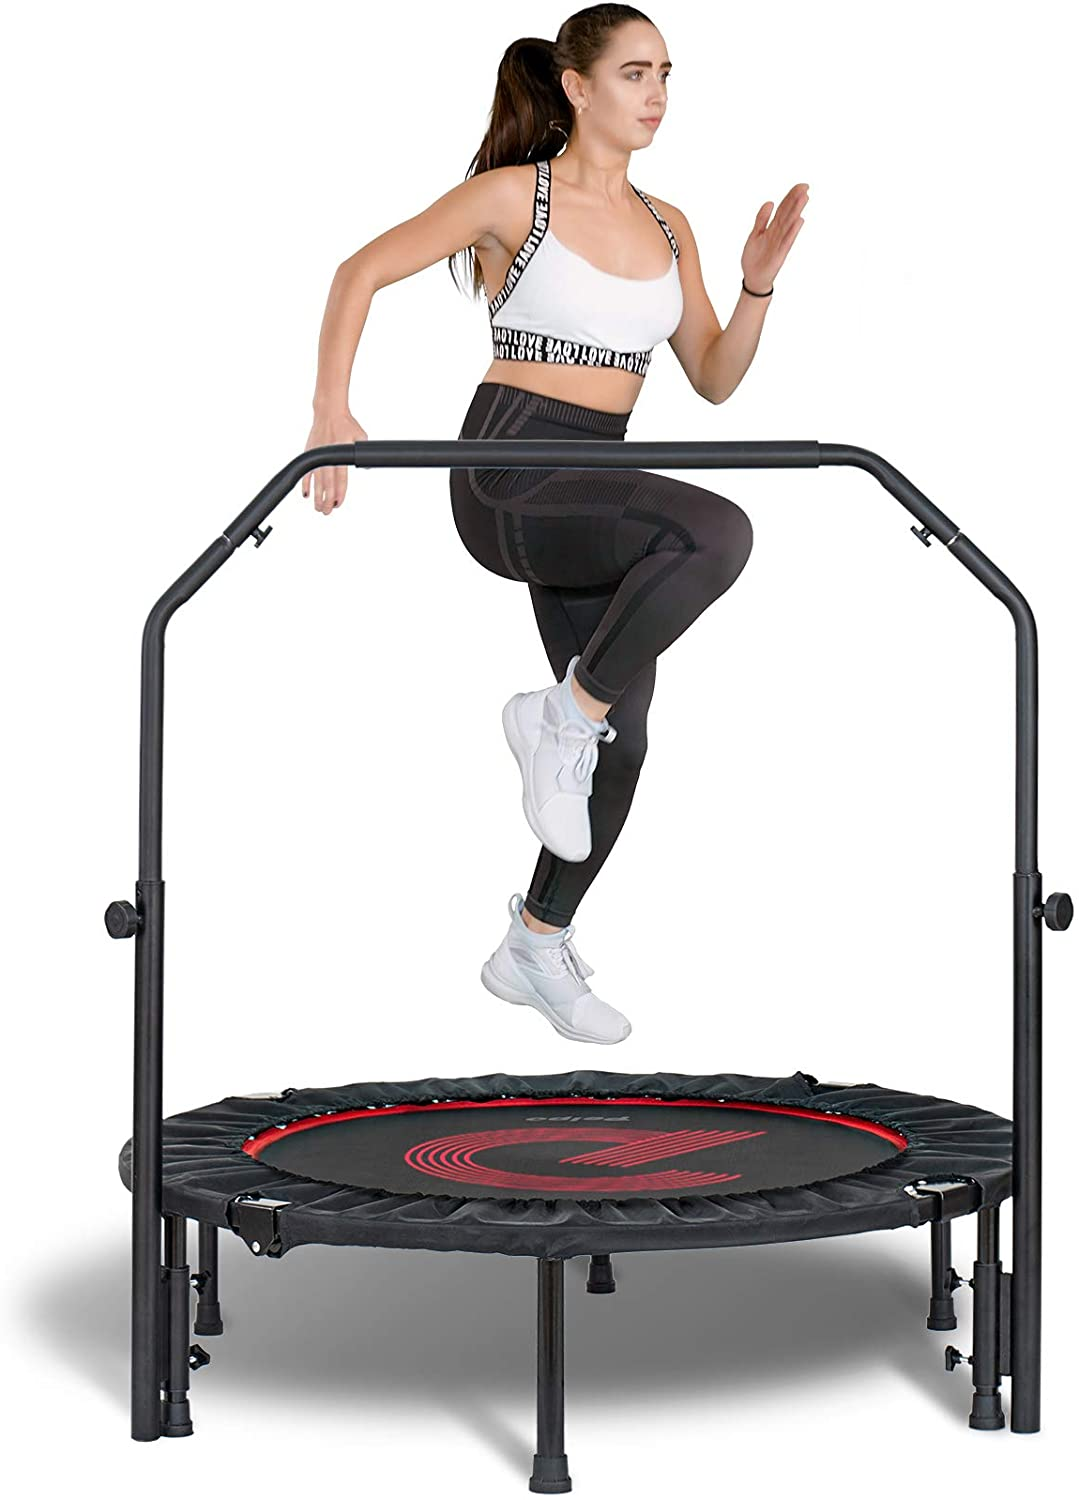 Permalink to Indoor Small Rebounder Exercise Trampoline for Workout Fitness for Quiet and Safely Cushioned Bounce 40 Inch